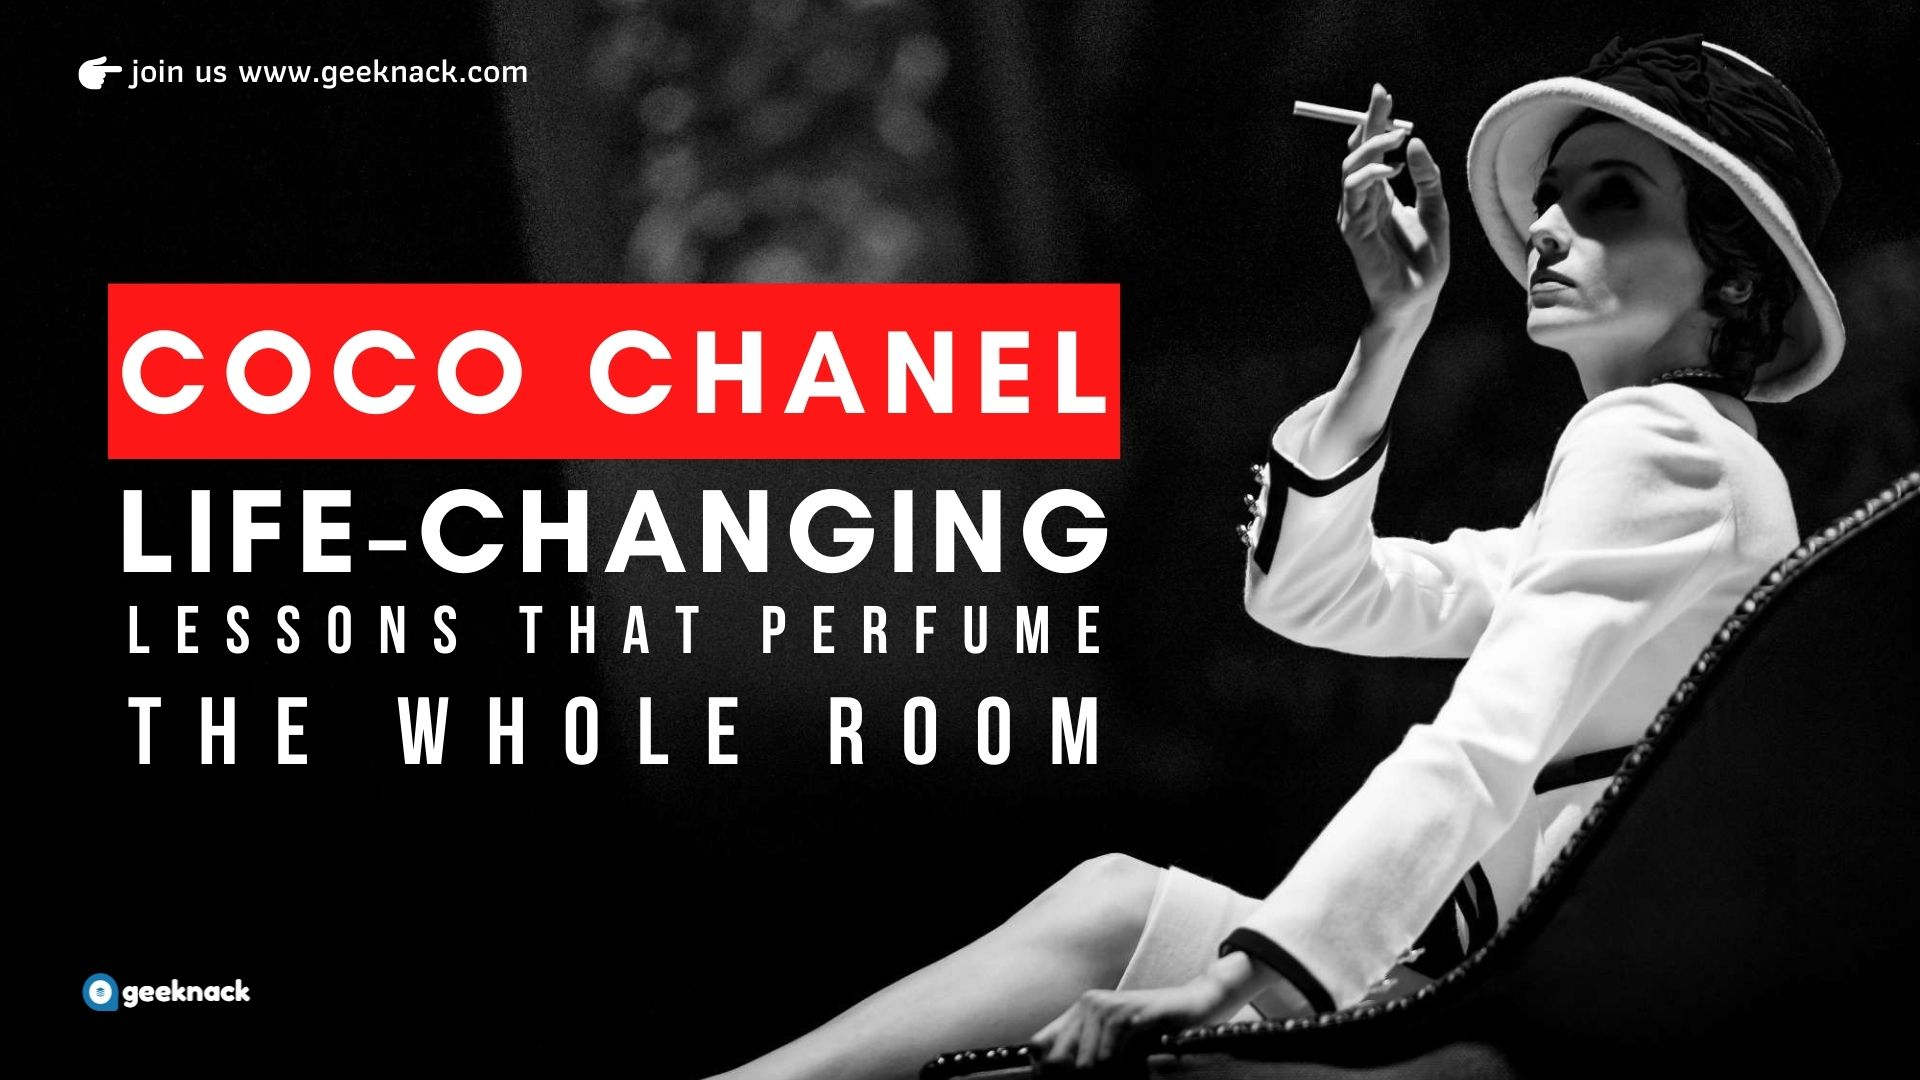 Coco Chanel - Life Changing Lessons That Perfume The Whole Room